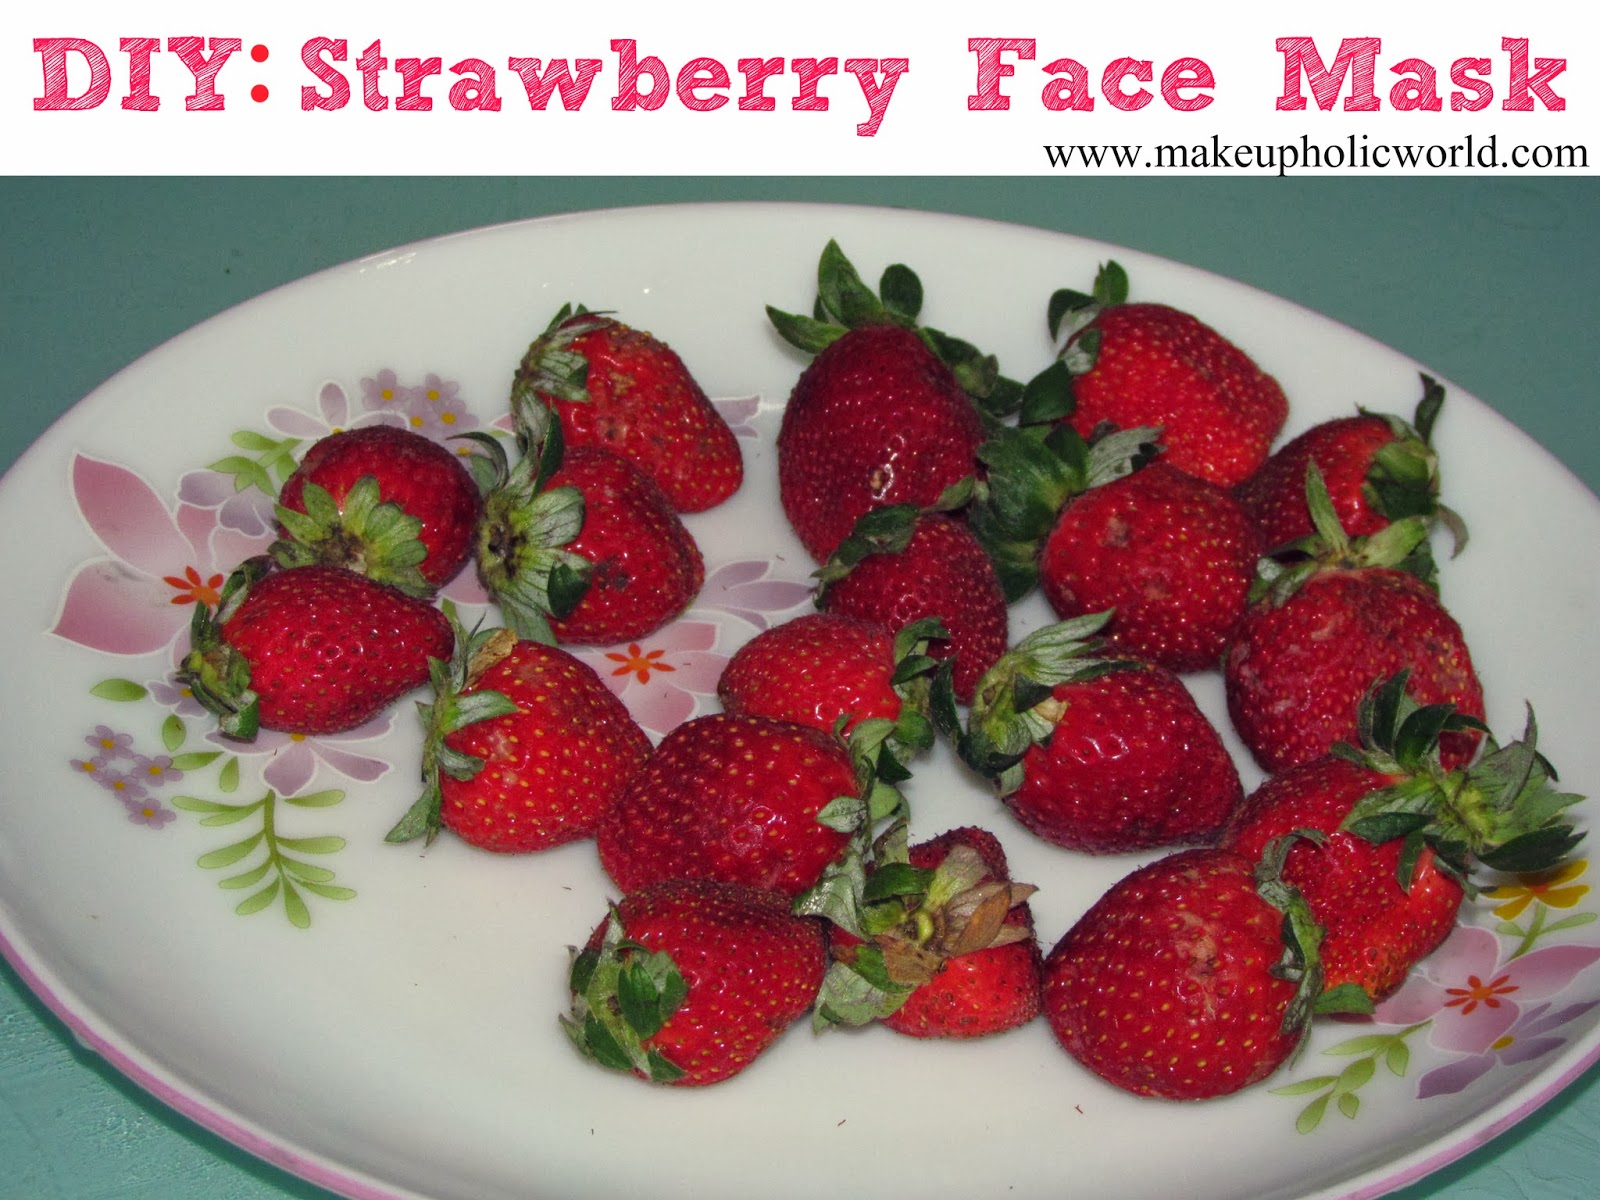 DIY: How to make a Strawberry Facial Mask at Home